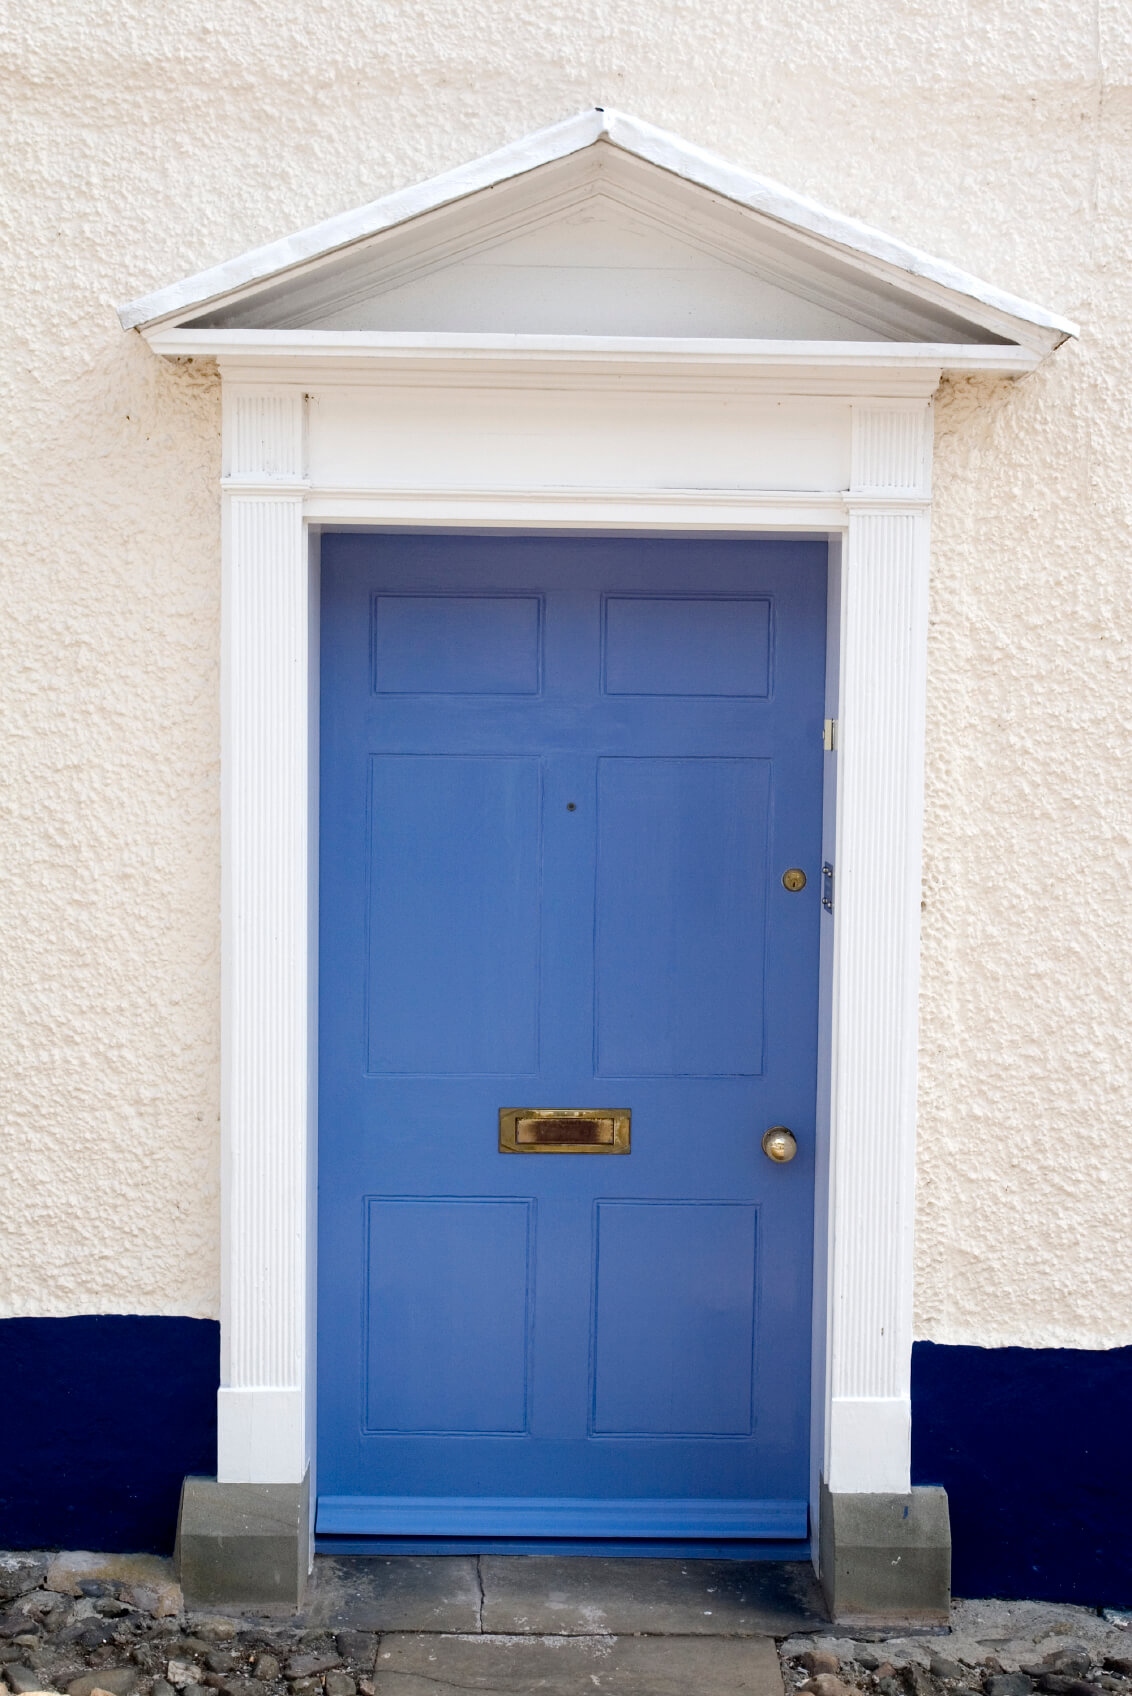 Dark blue front doors - A Blue Front Door Situated On A Front Exterior Wall Of Concrete Which Is Painted White